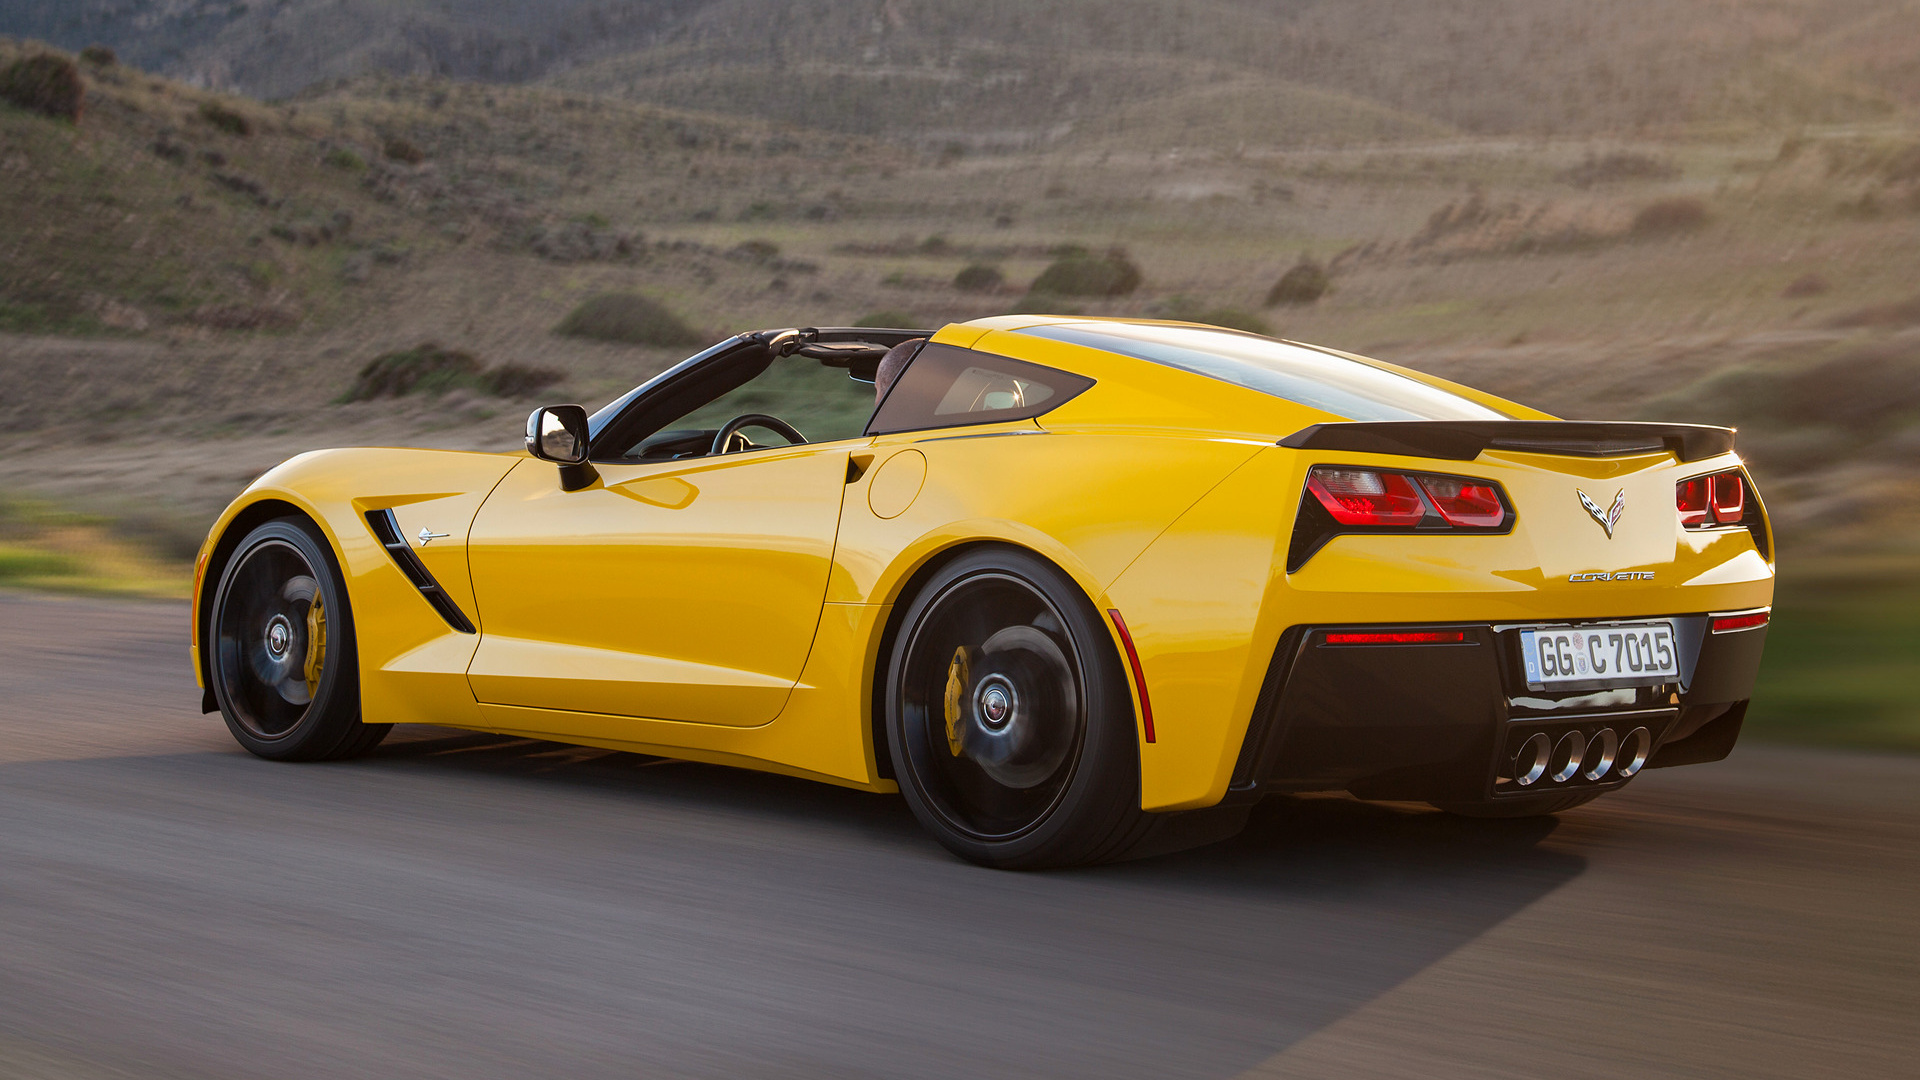 chevrolet corvette stingray coupe 2013 eu wallpapers and. Black Bedroom Furniture Sets. Home Design Ideas